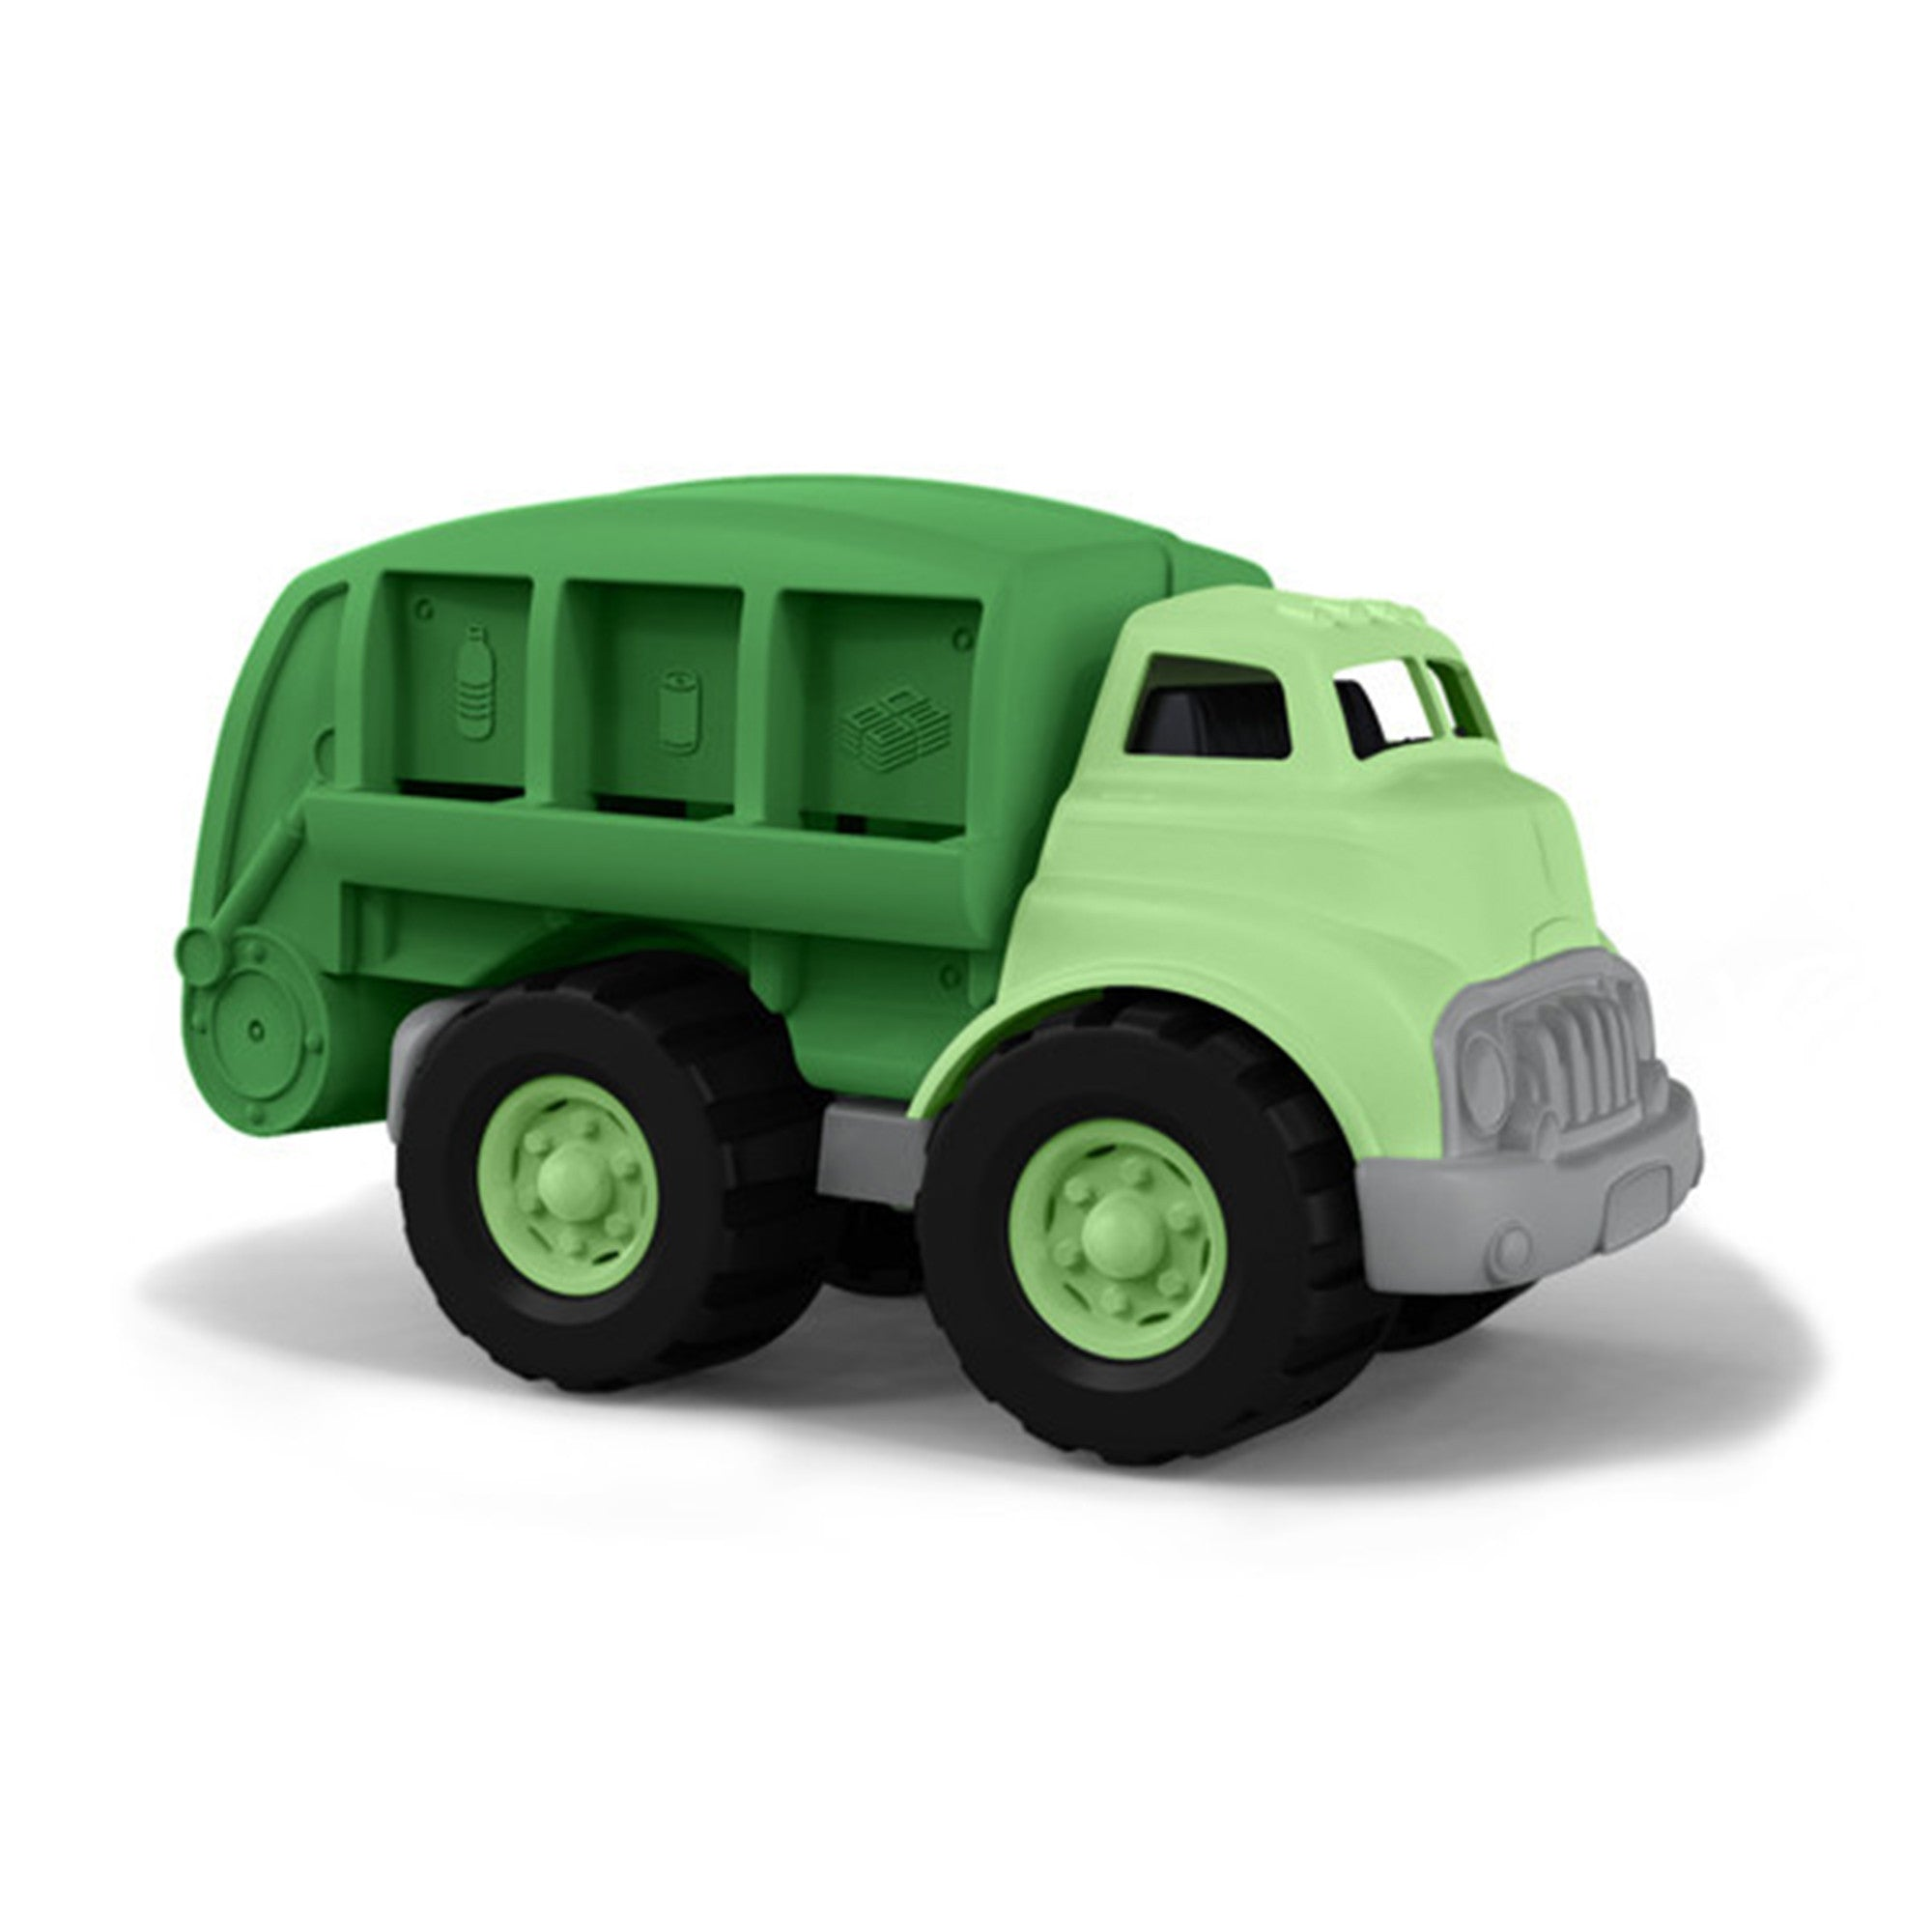 Green Toys Recycling Truck   - Green Toys - Little Earth Nest